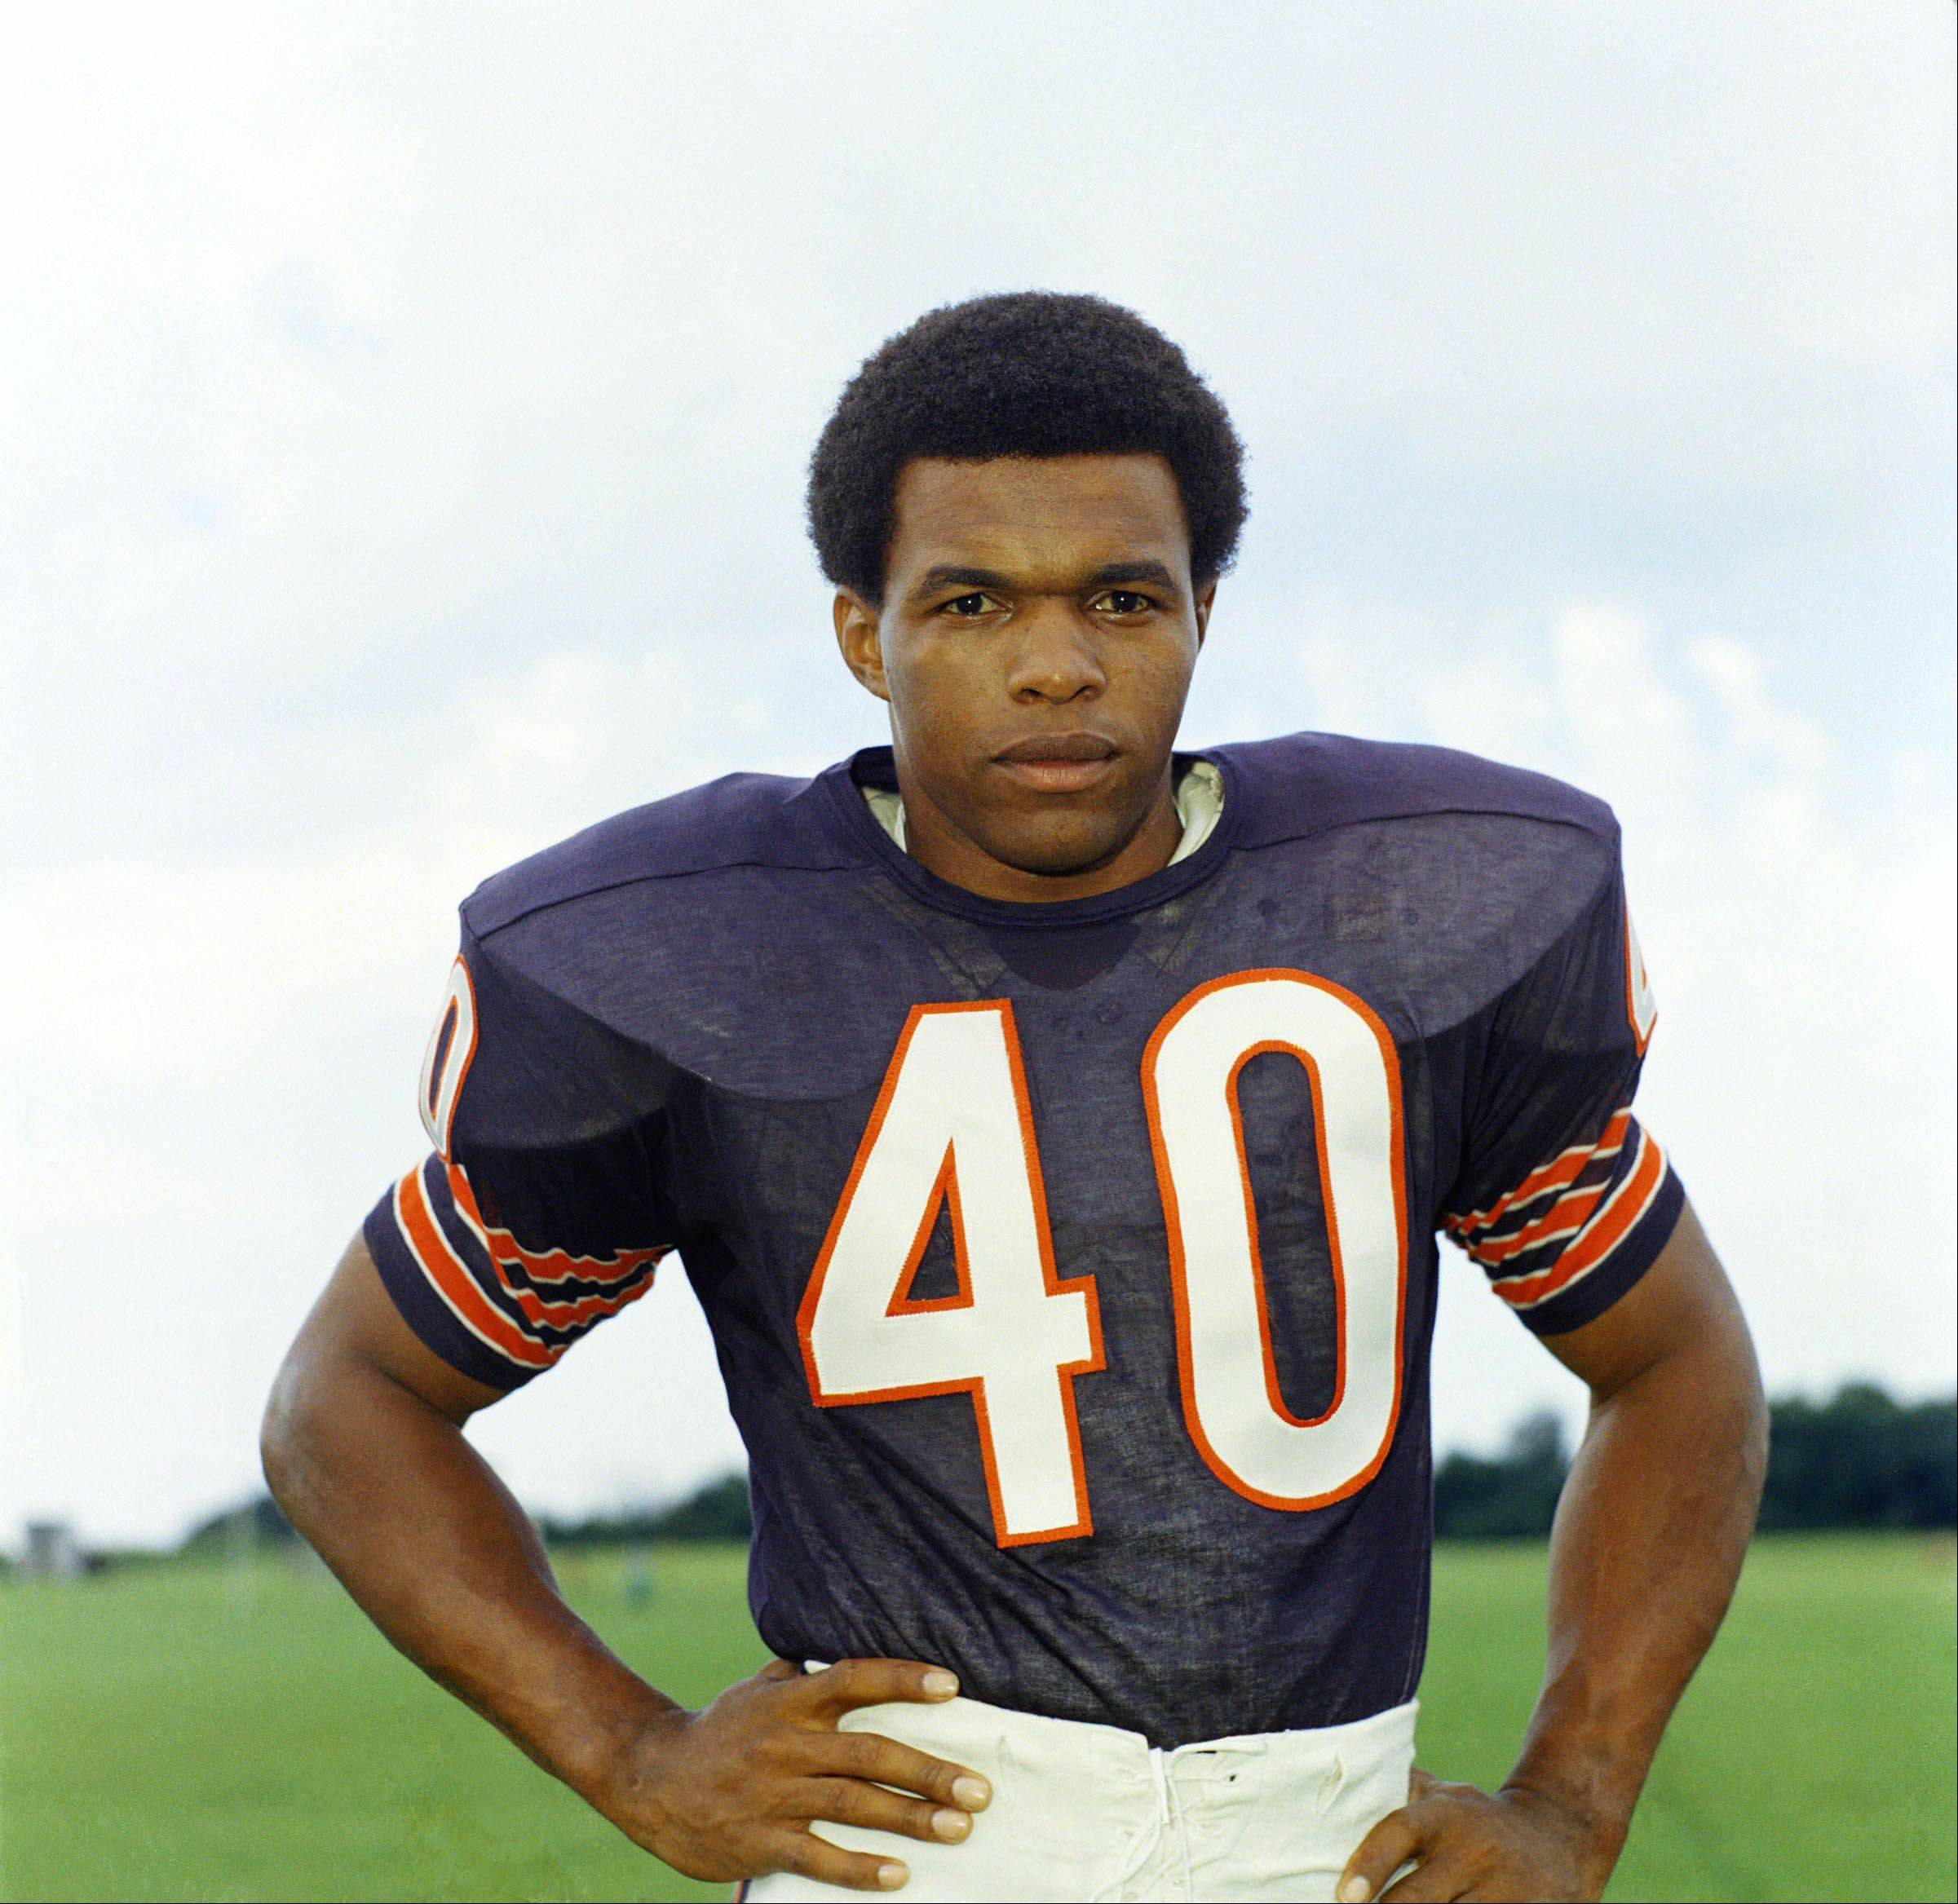 Hall of Fame running back Gale Sayers is suing the National Football League and helmet maker Riddell claiming their failure to prevent repeated head injuries which caused him to suffer brain damage.